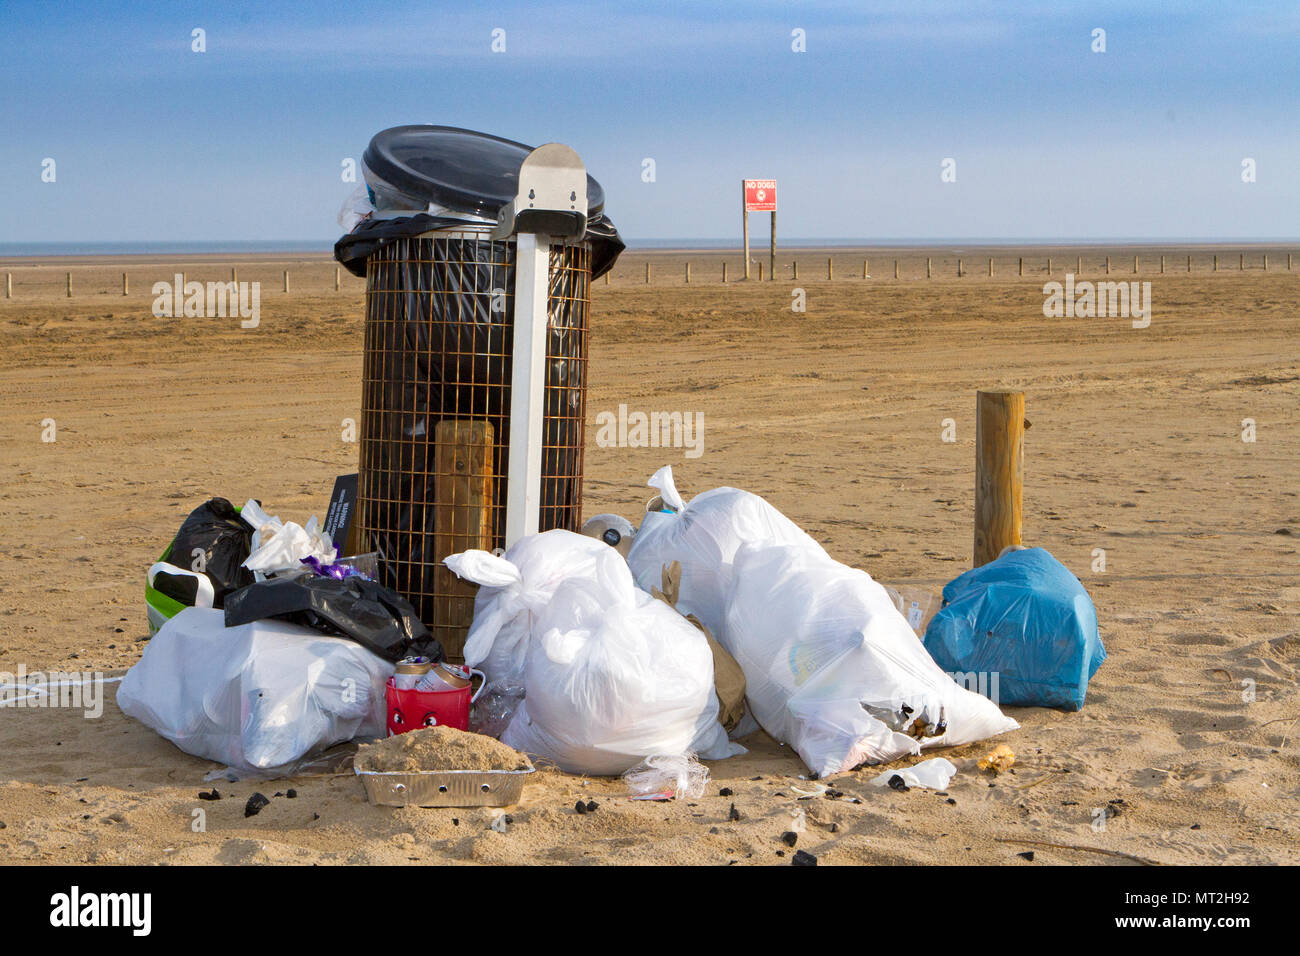 Filthy Beach, Southport, Merseyside. 28th May 2018. Bank Holiday revellers leave Southport's beaches strewn with rubbish, discarded barbecues and empty beer cans.  Beauty spots were covered in litter and bags of rubbish were piled-up next to overflowing bins.  Many simply left their rubbish behind after having barbecues and drinks in the great outdoors - forcing local clean up squads to leap into action today. While some attempted to clear up by placing their litter near a bin, the nature spots were still blighted by mountains of festering rubbish.  Credit: Cernan Elias/Alamy Live News Stock Photo